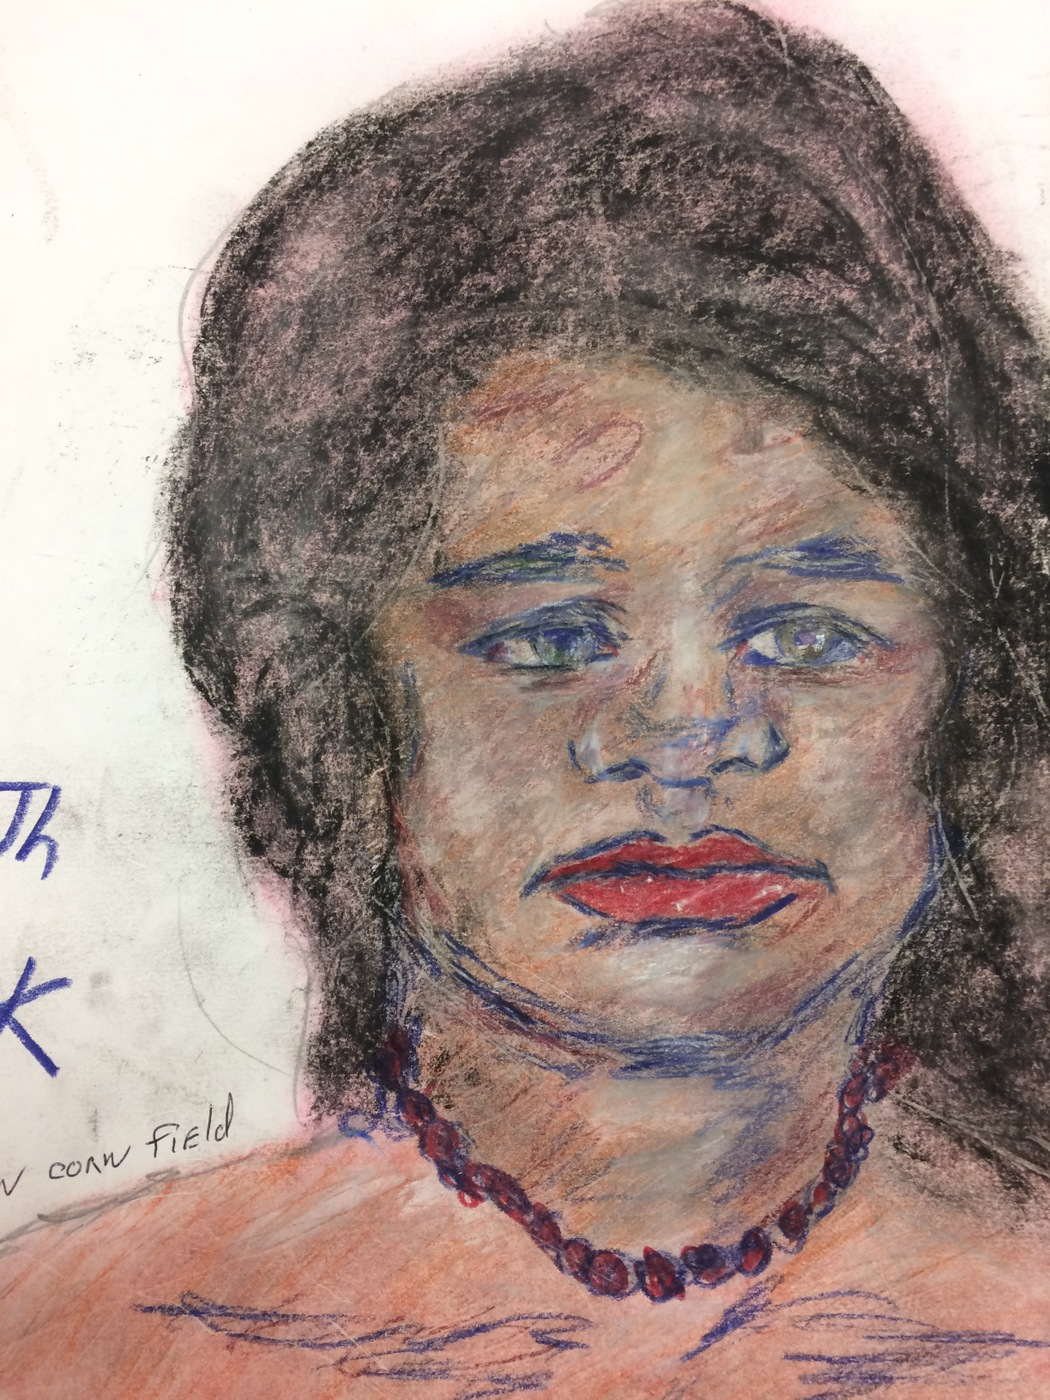 Samuel Little Drawing of Black Female Victim (Killed in 1992 or 1993, North Little Rock, Arkansas)